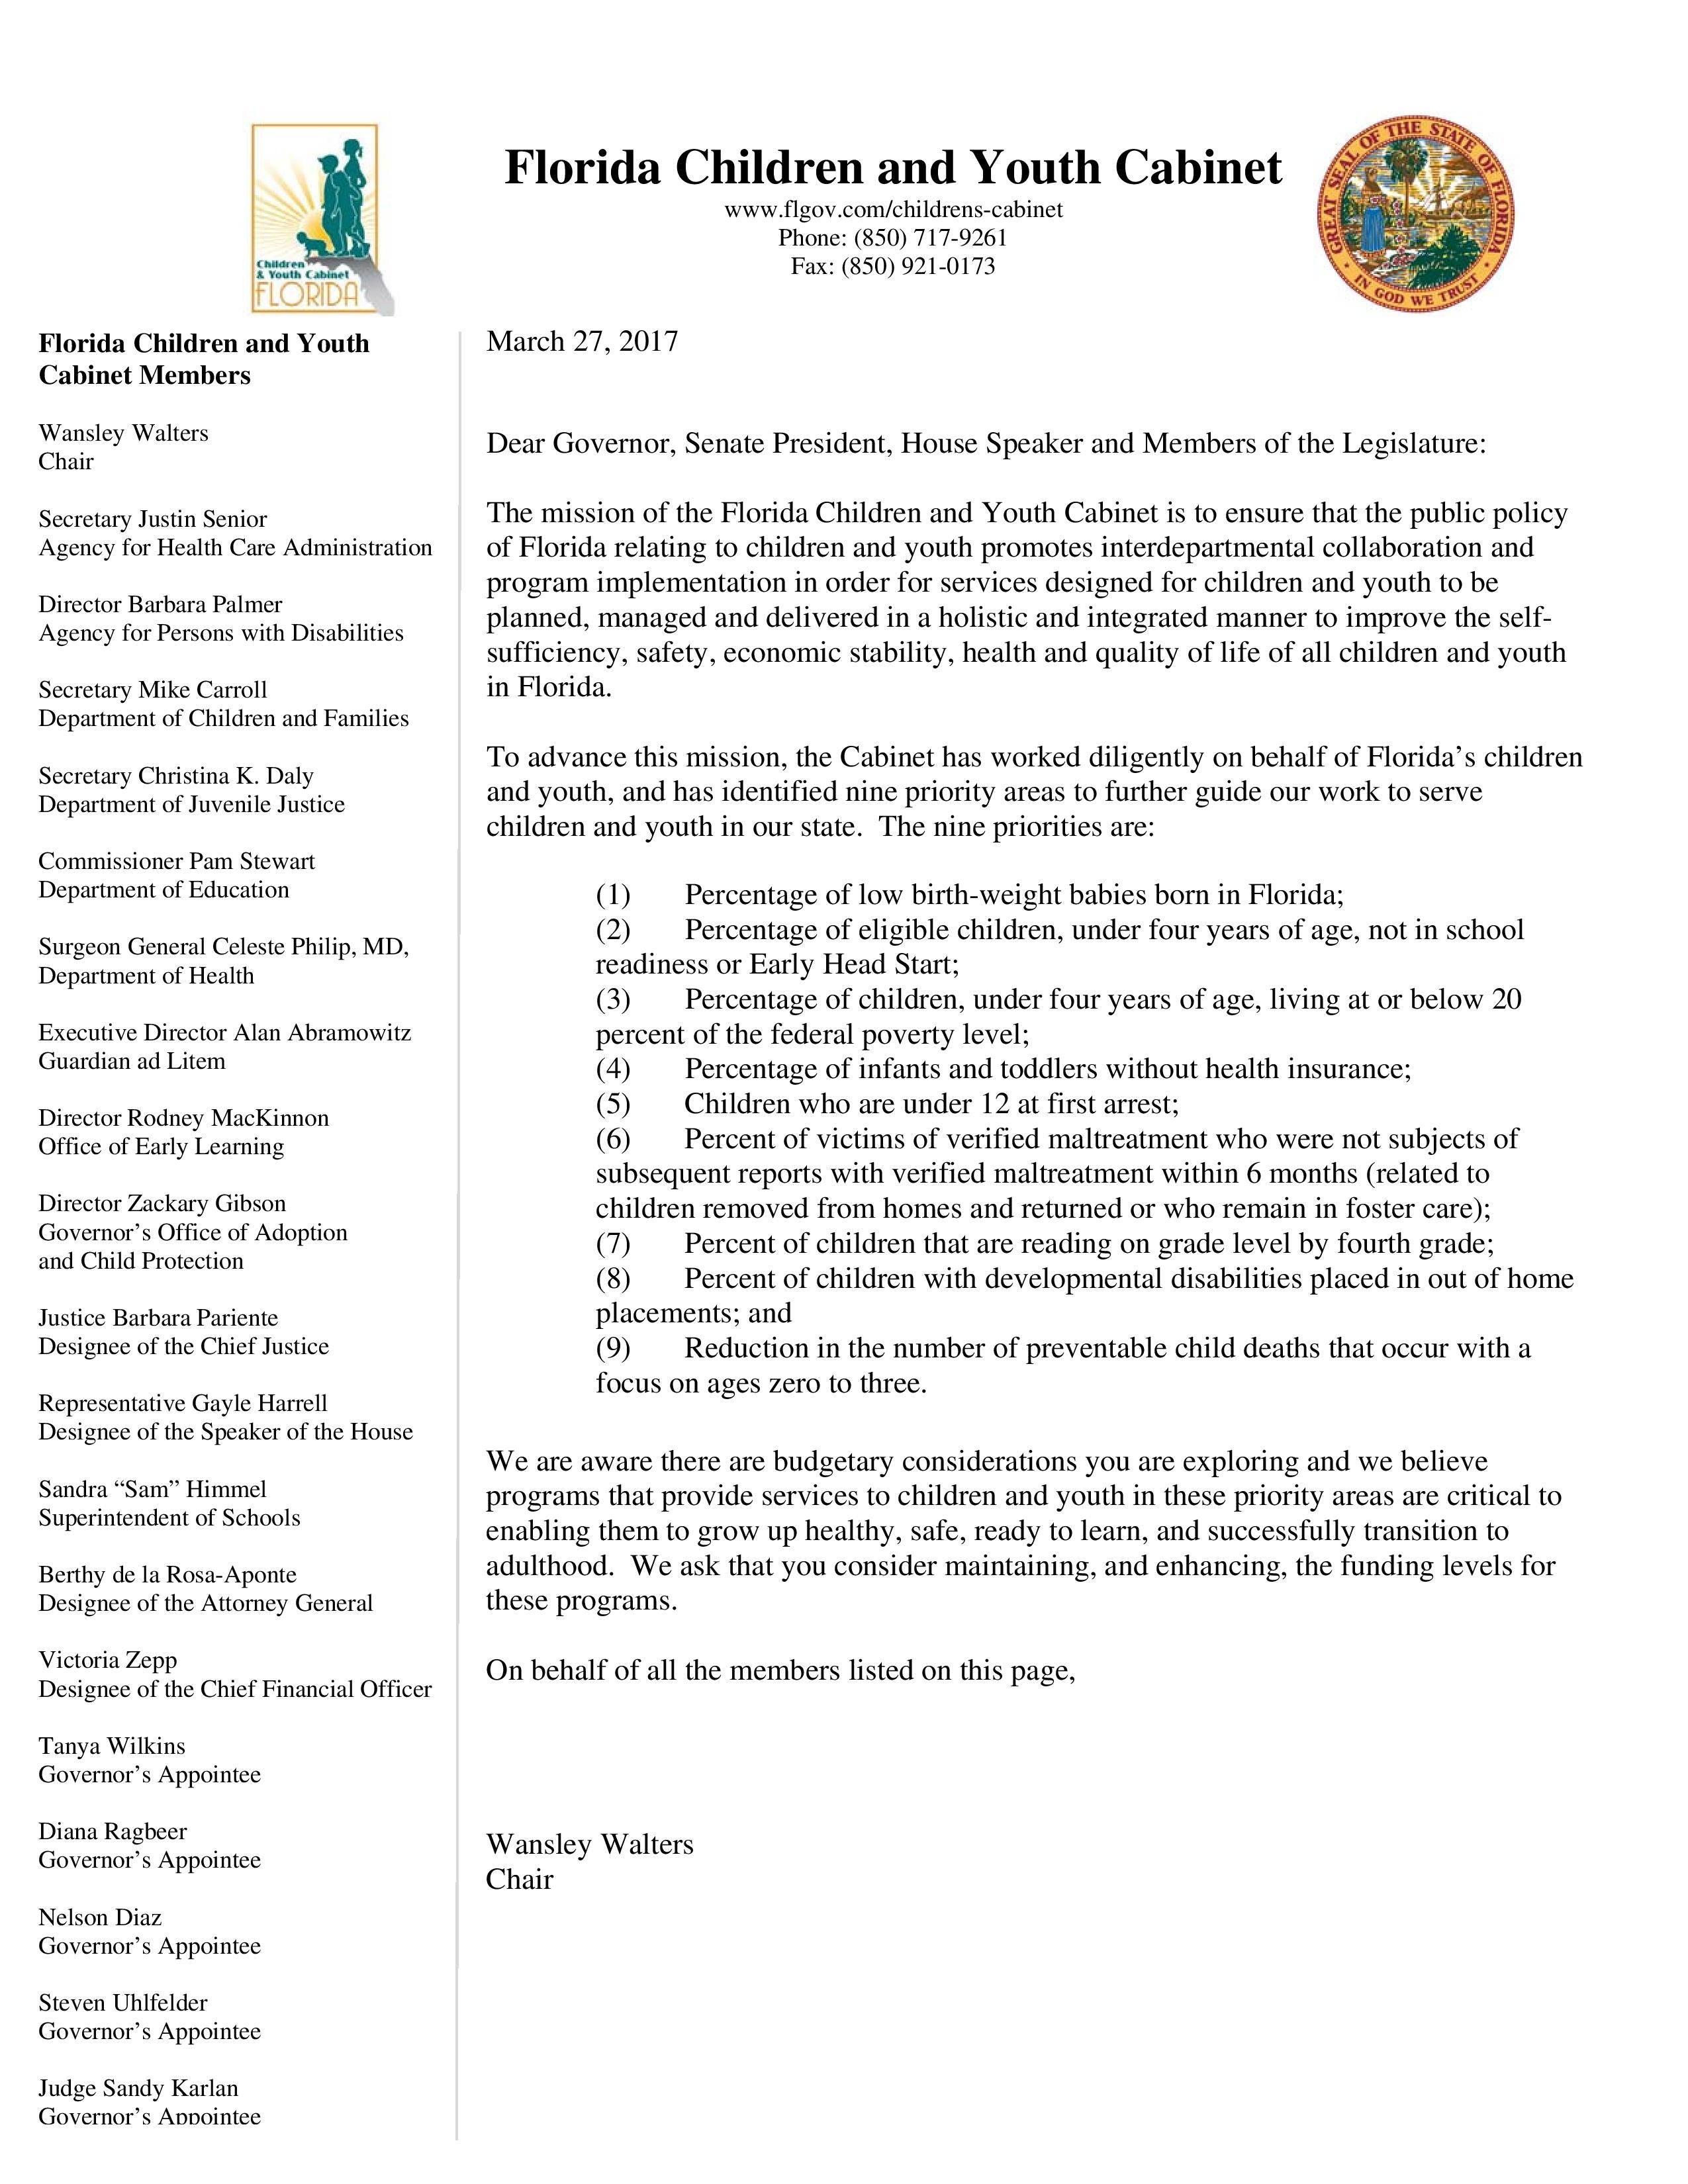 Florida Children and Youth Cabinet Letter 03_27_17